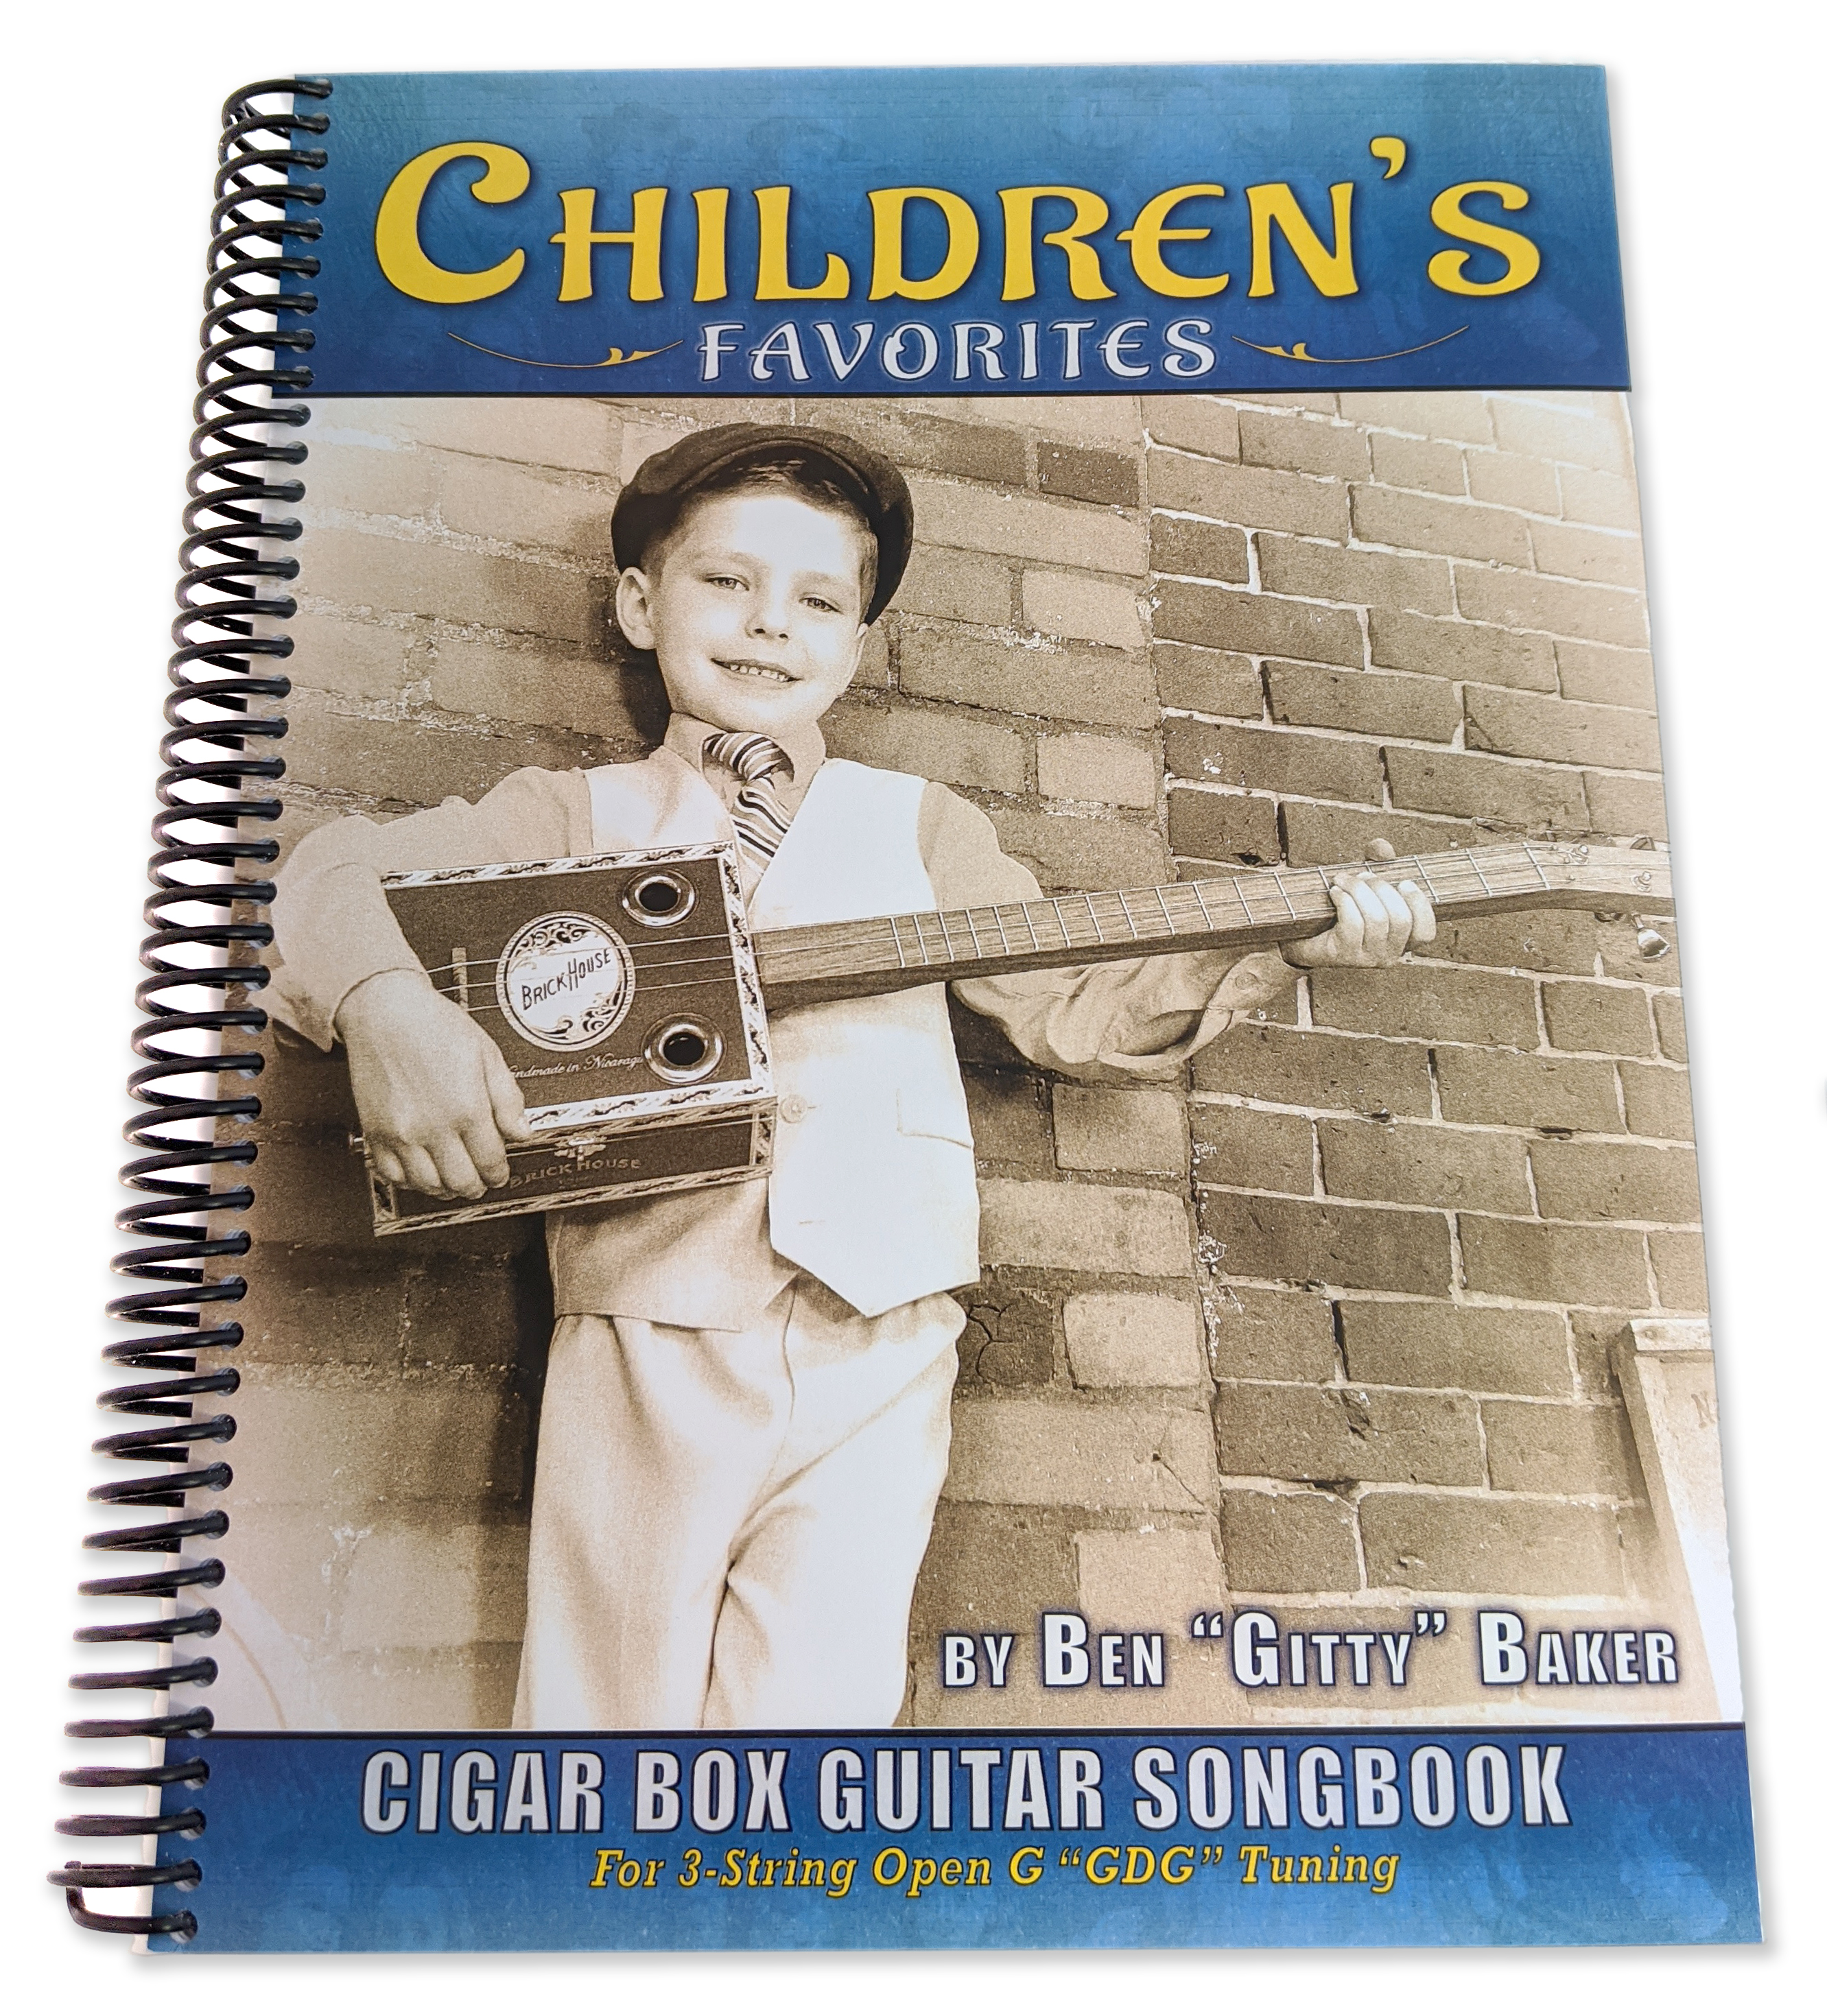 Children's Favorites Cigar Box Guitar Songbook